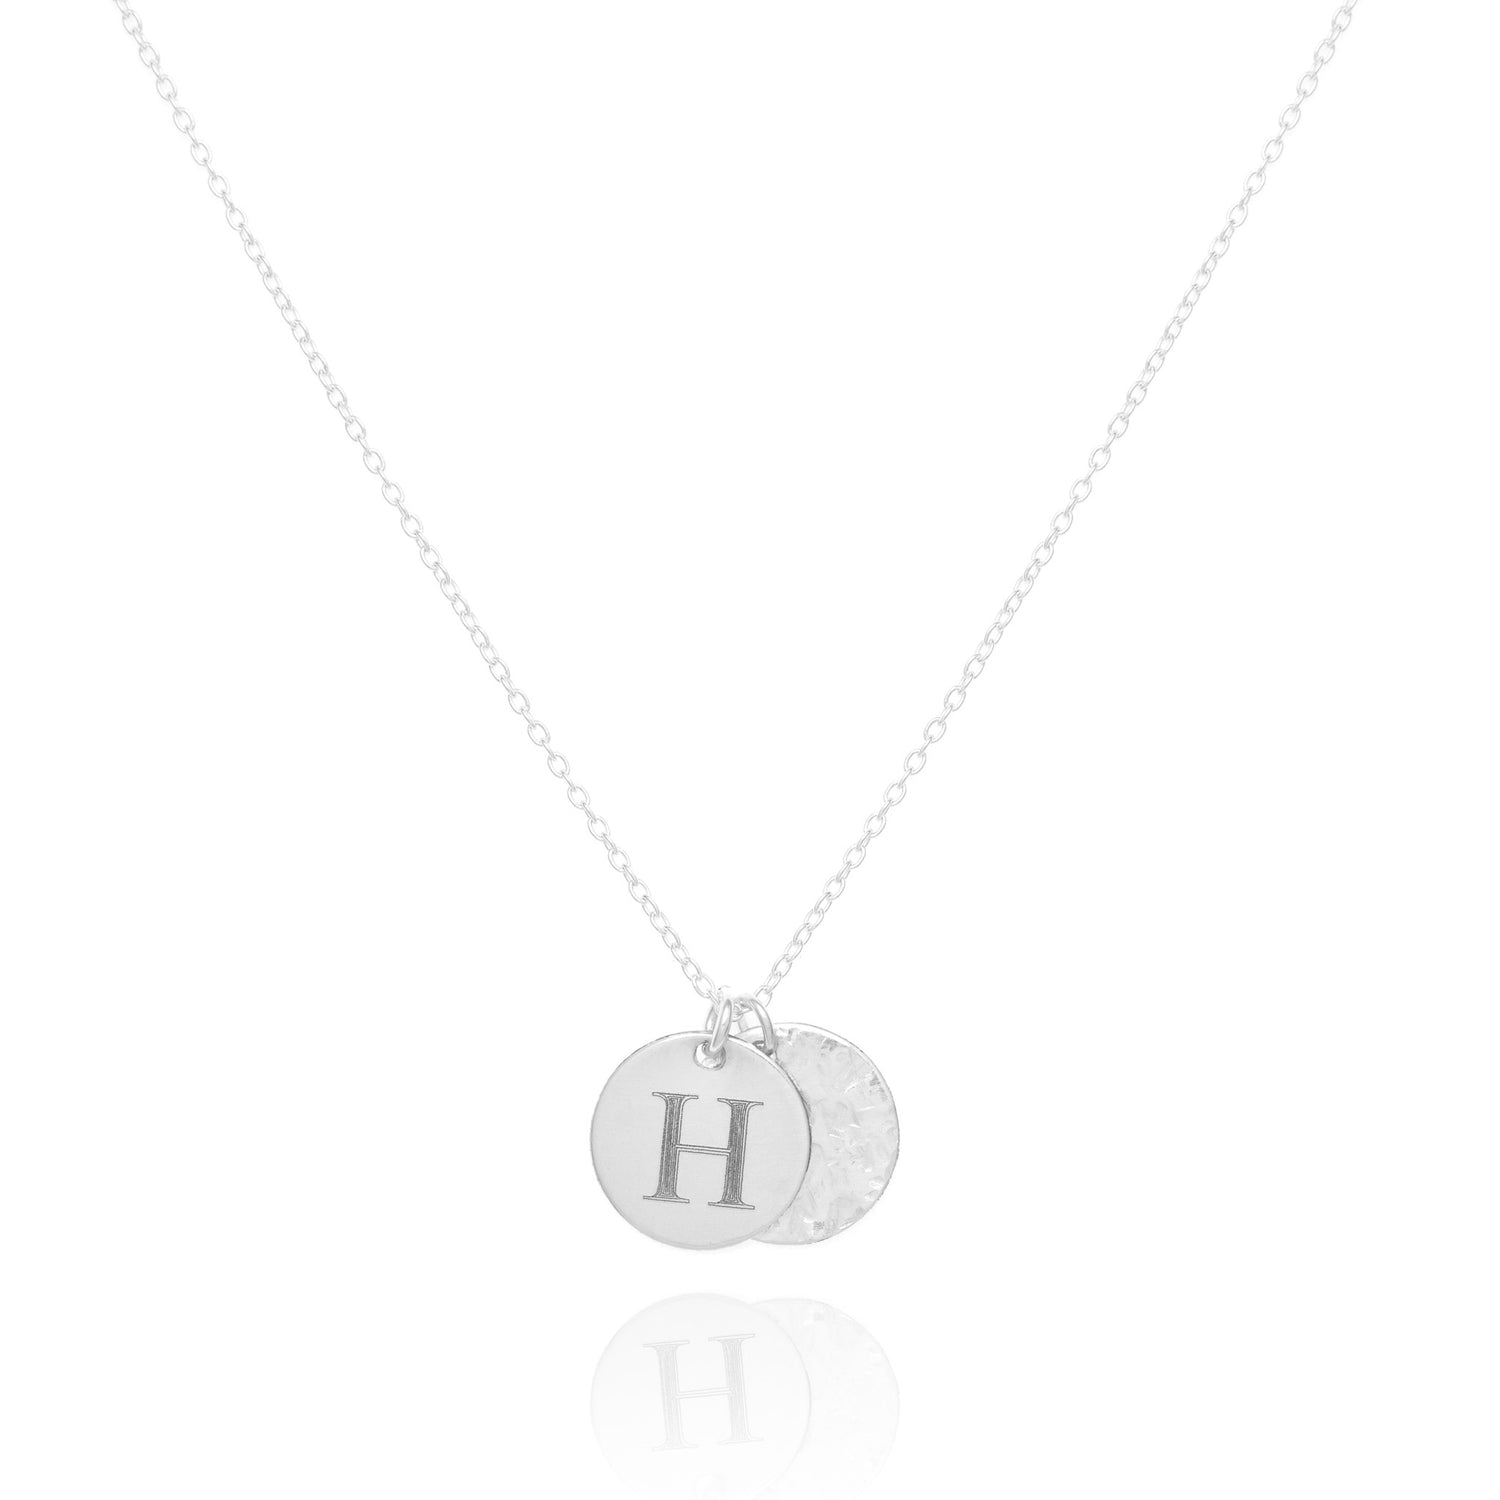 Heritage & Radiance Coin necklace, silver